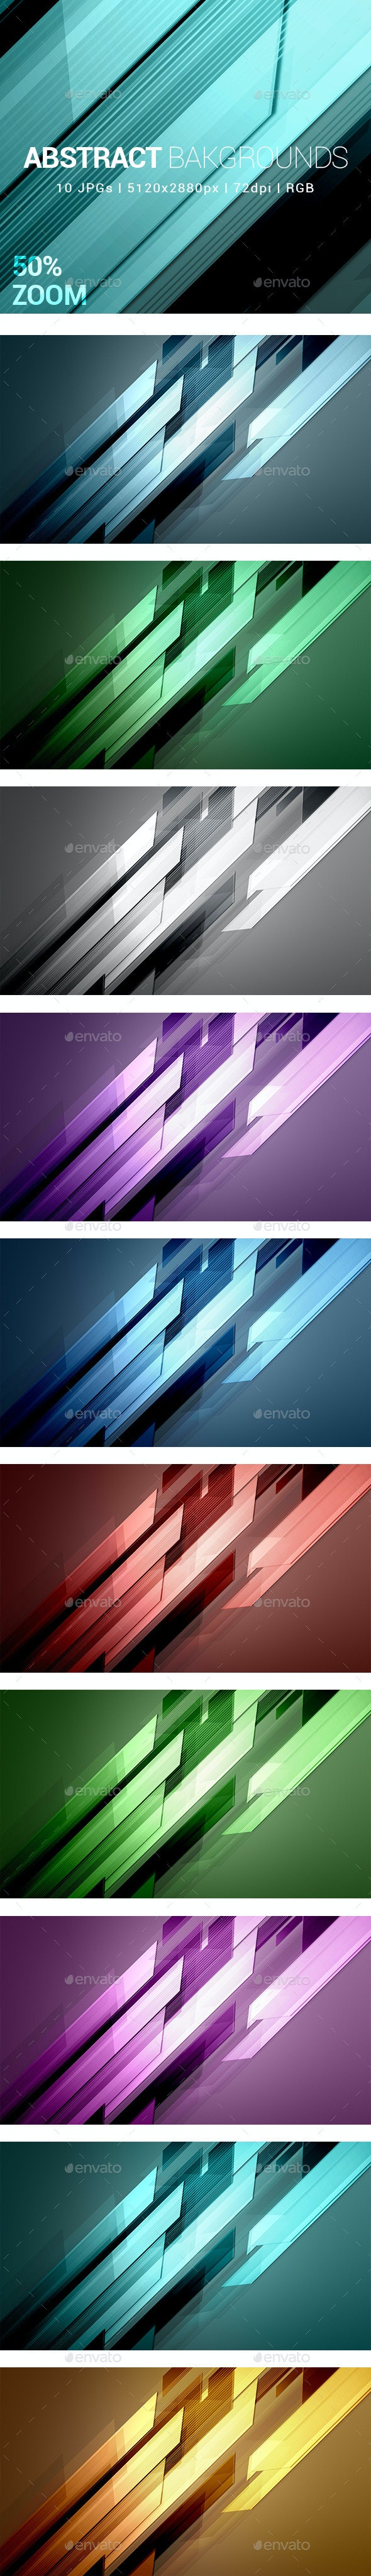 10 Abstract Backgrounds - Abstract Backgrounds